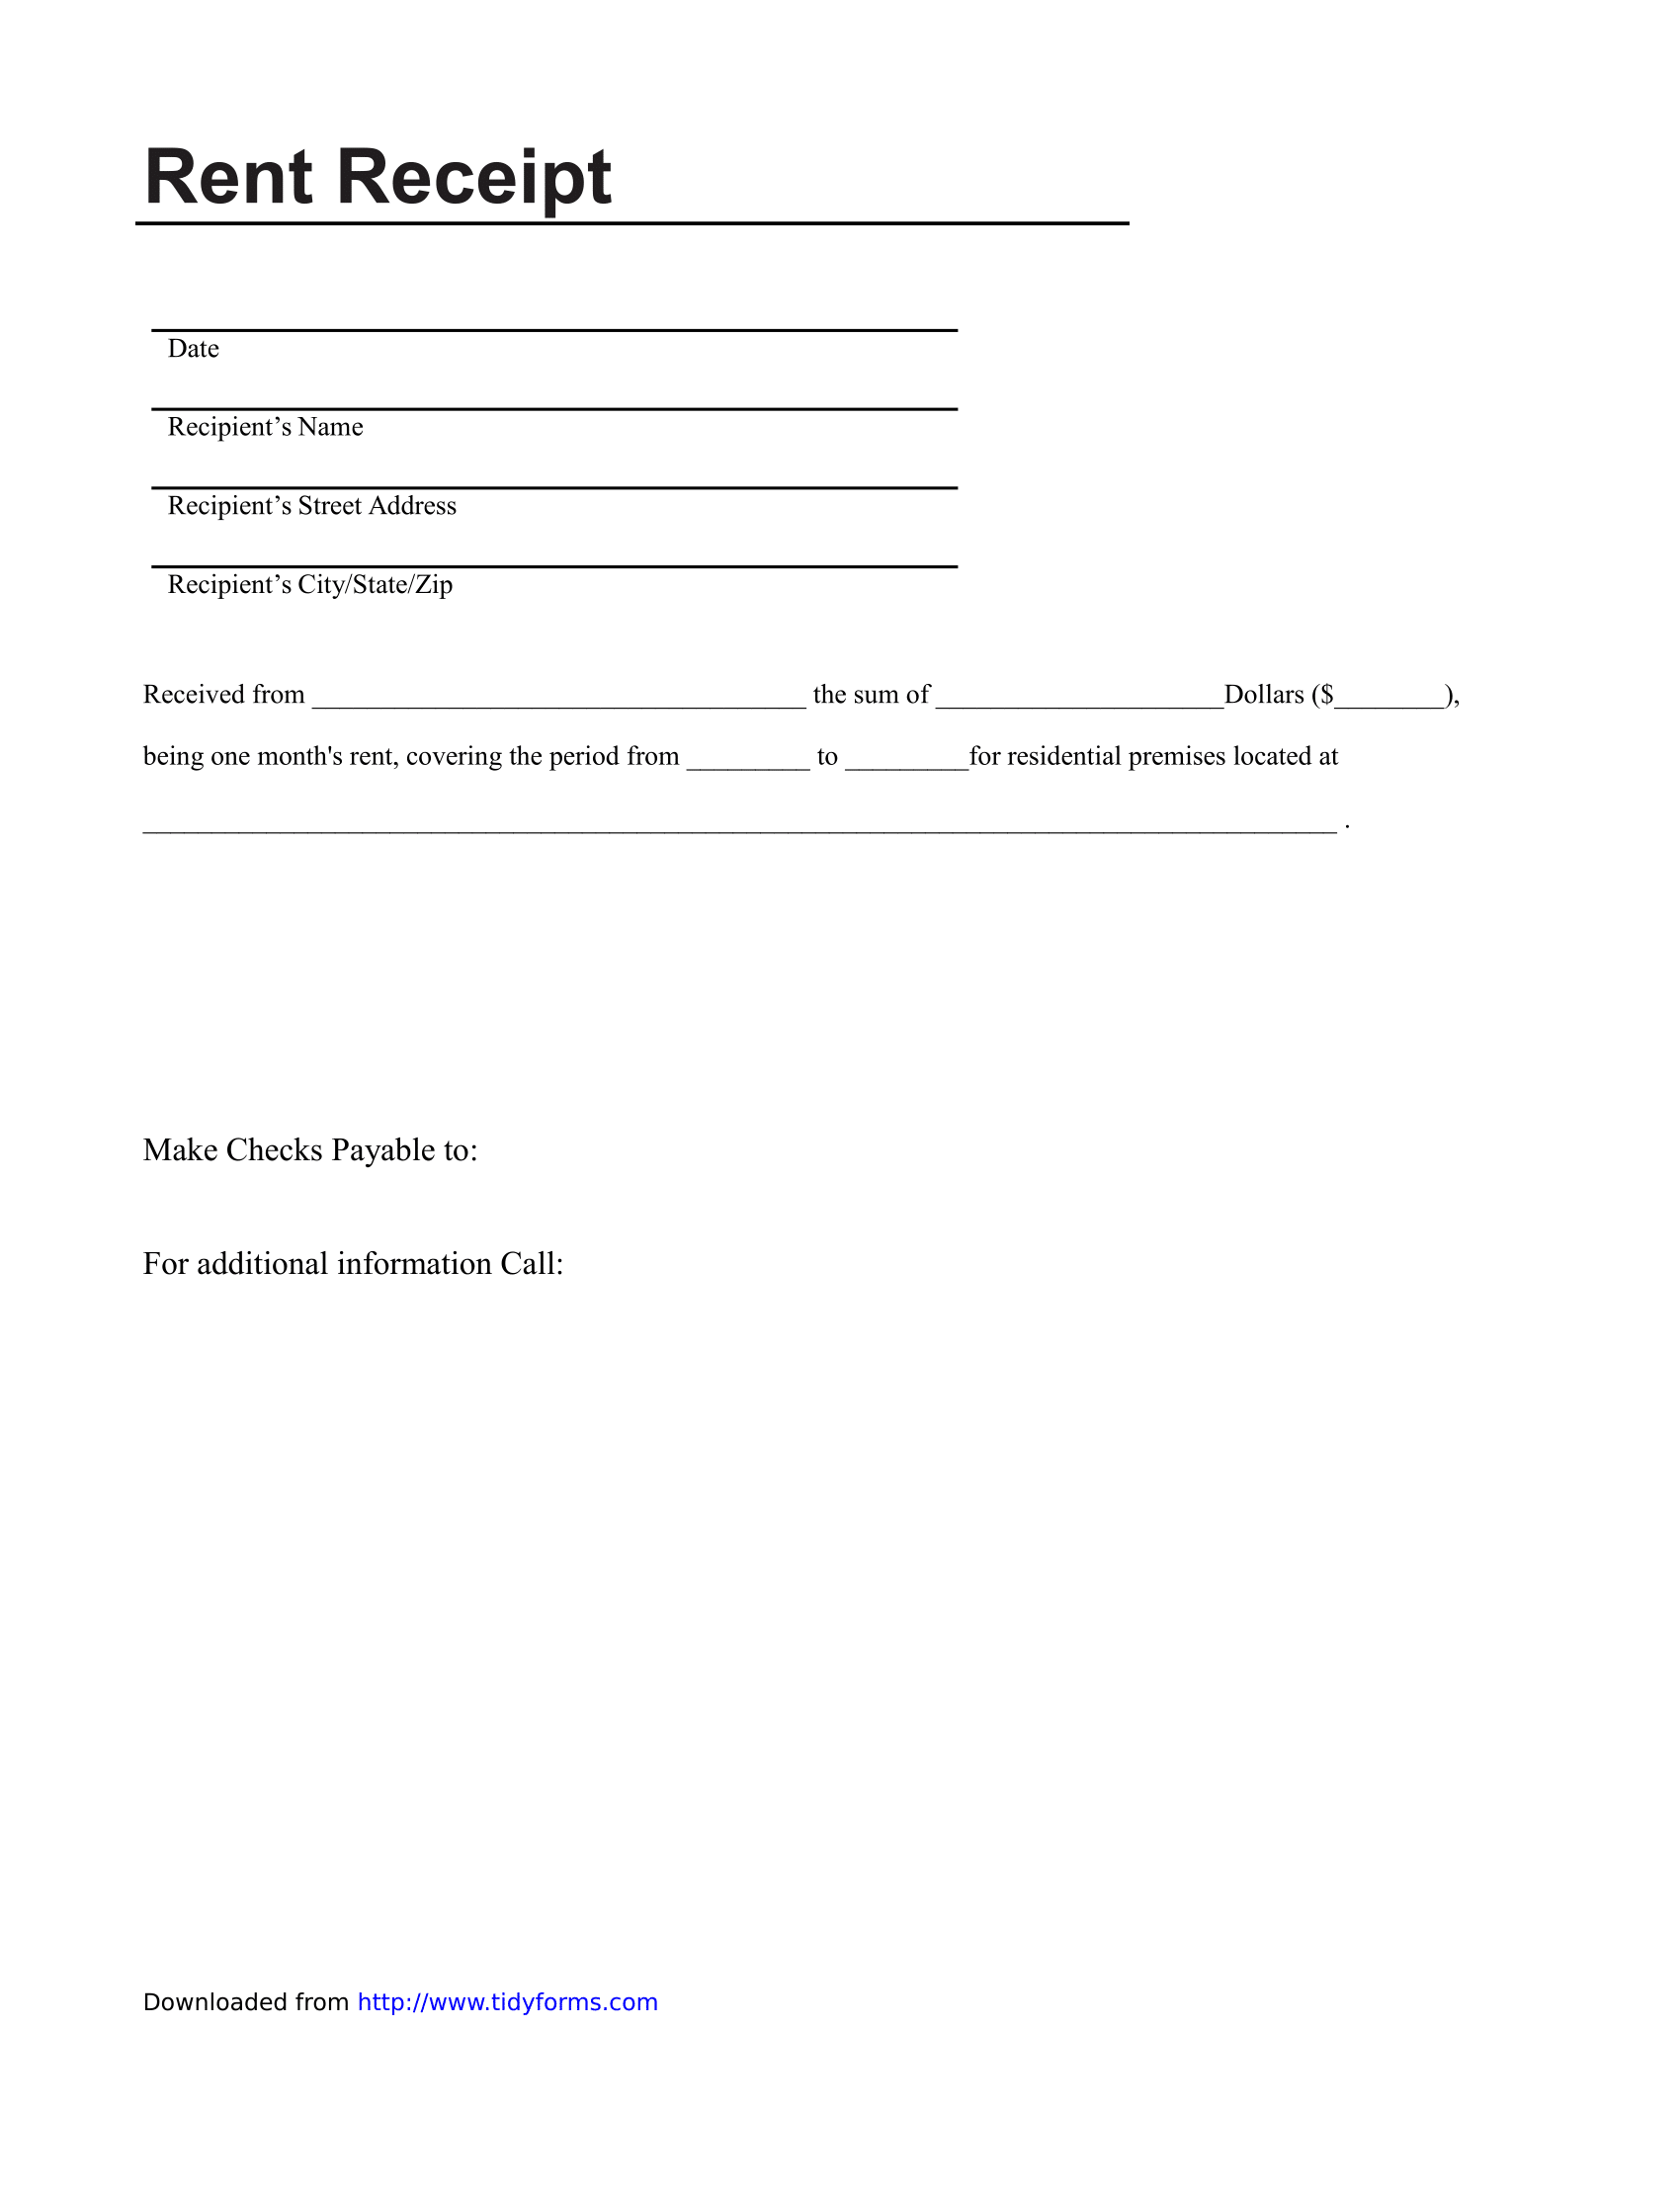 Rent Receipt Template Sample U2013 FREE Download  Download Rent Receipt Format